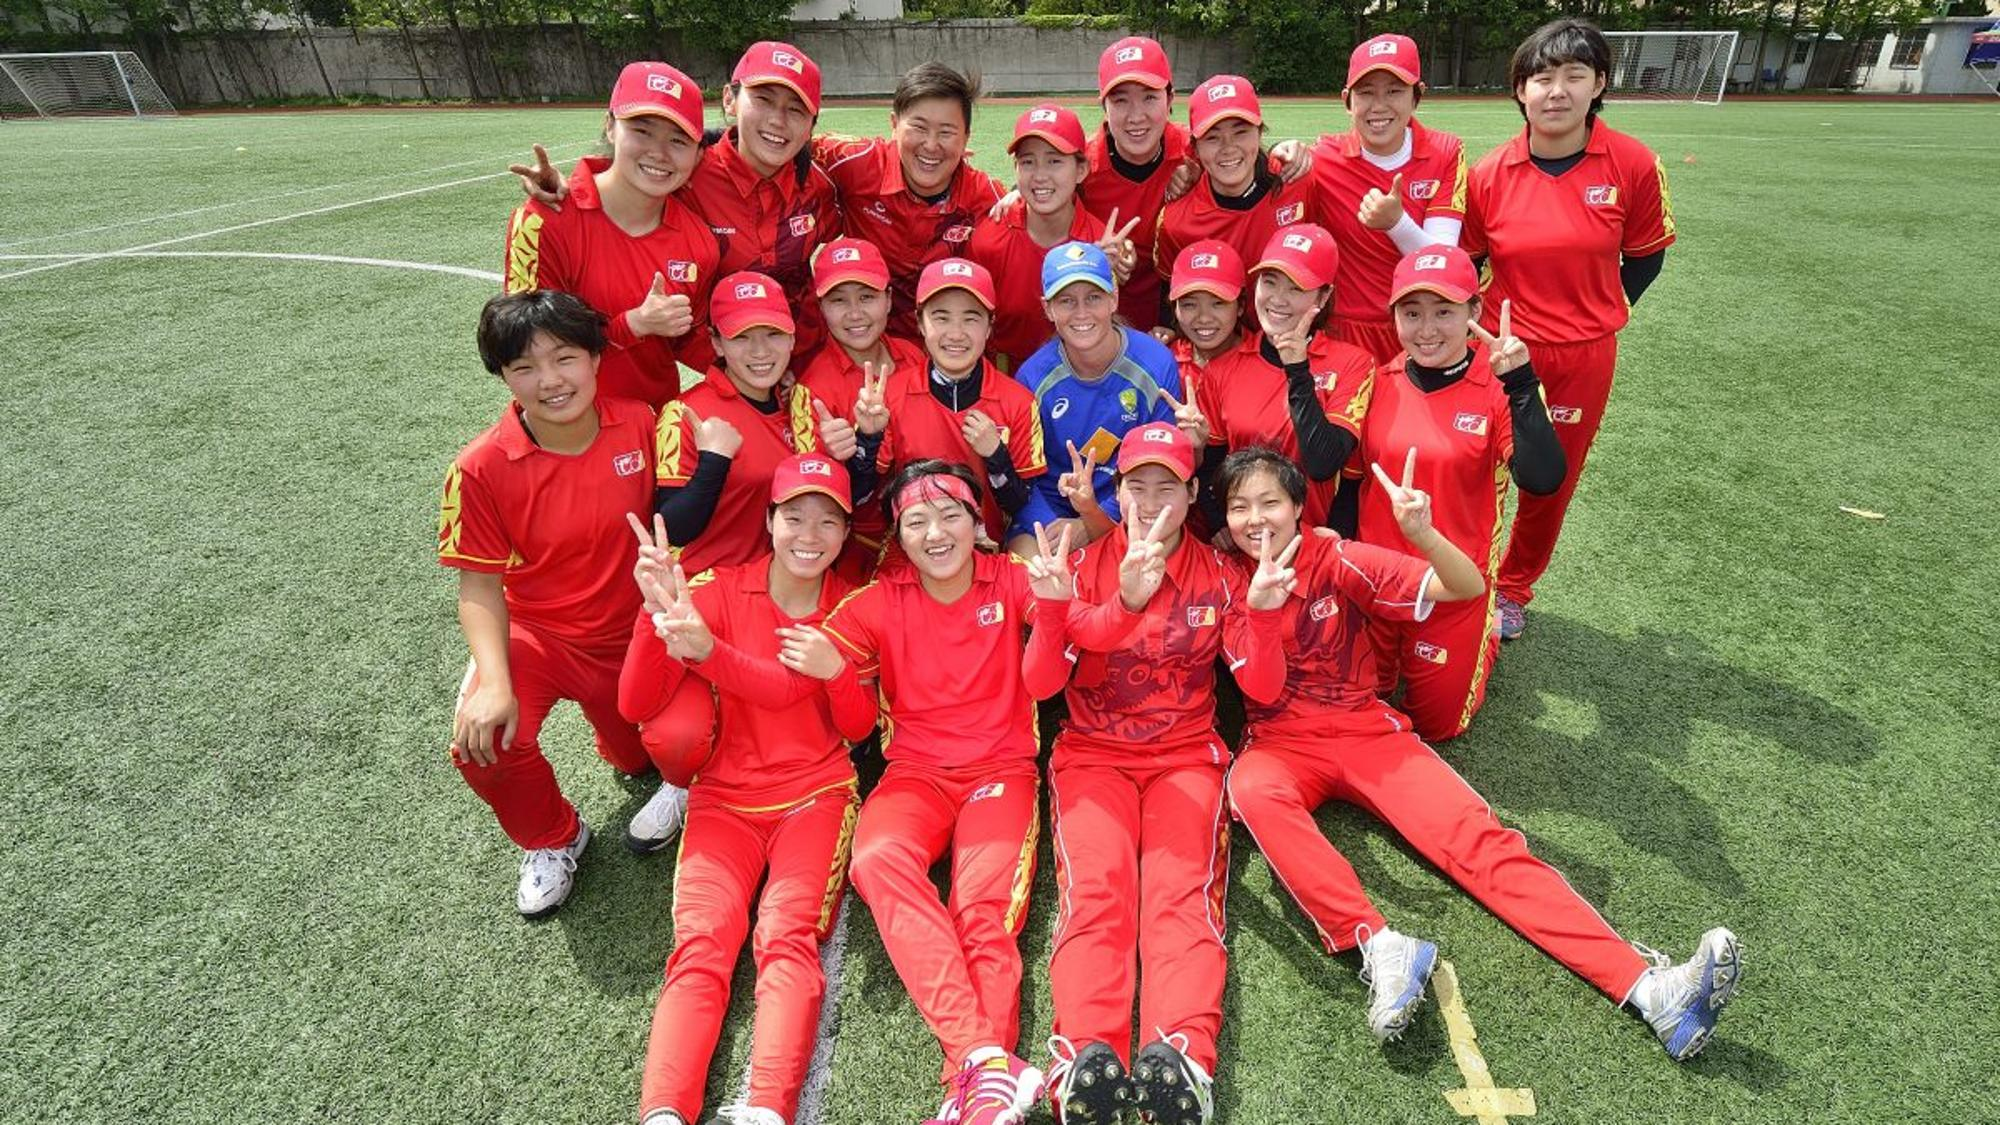 Australia's Meg Lanning supporting the growth of women's cricket in China